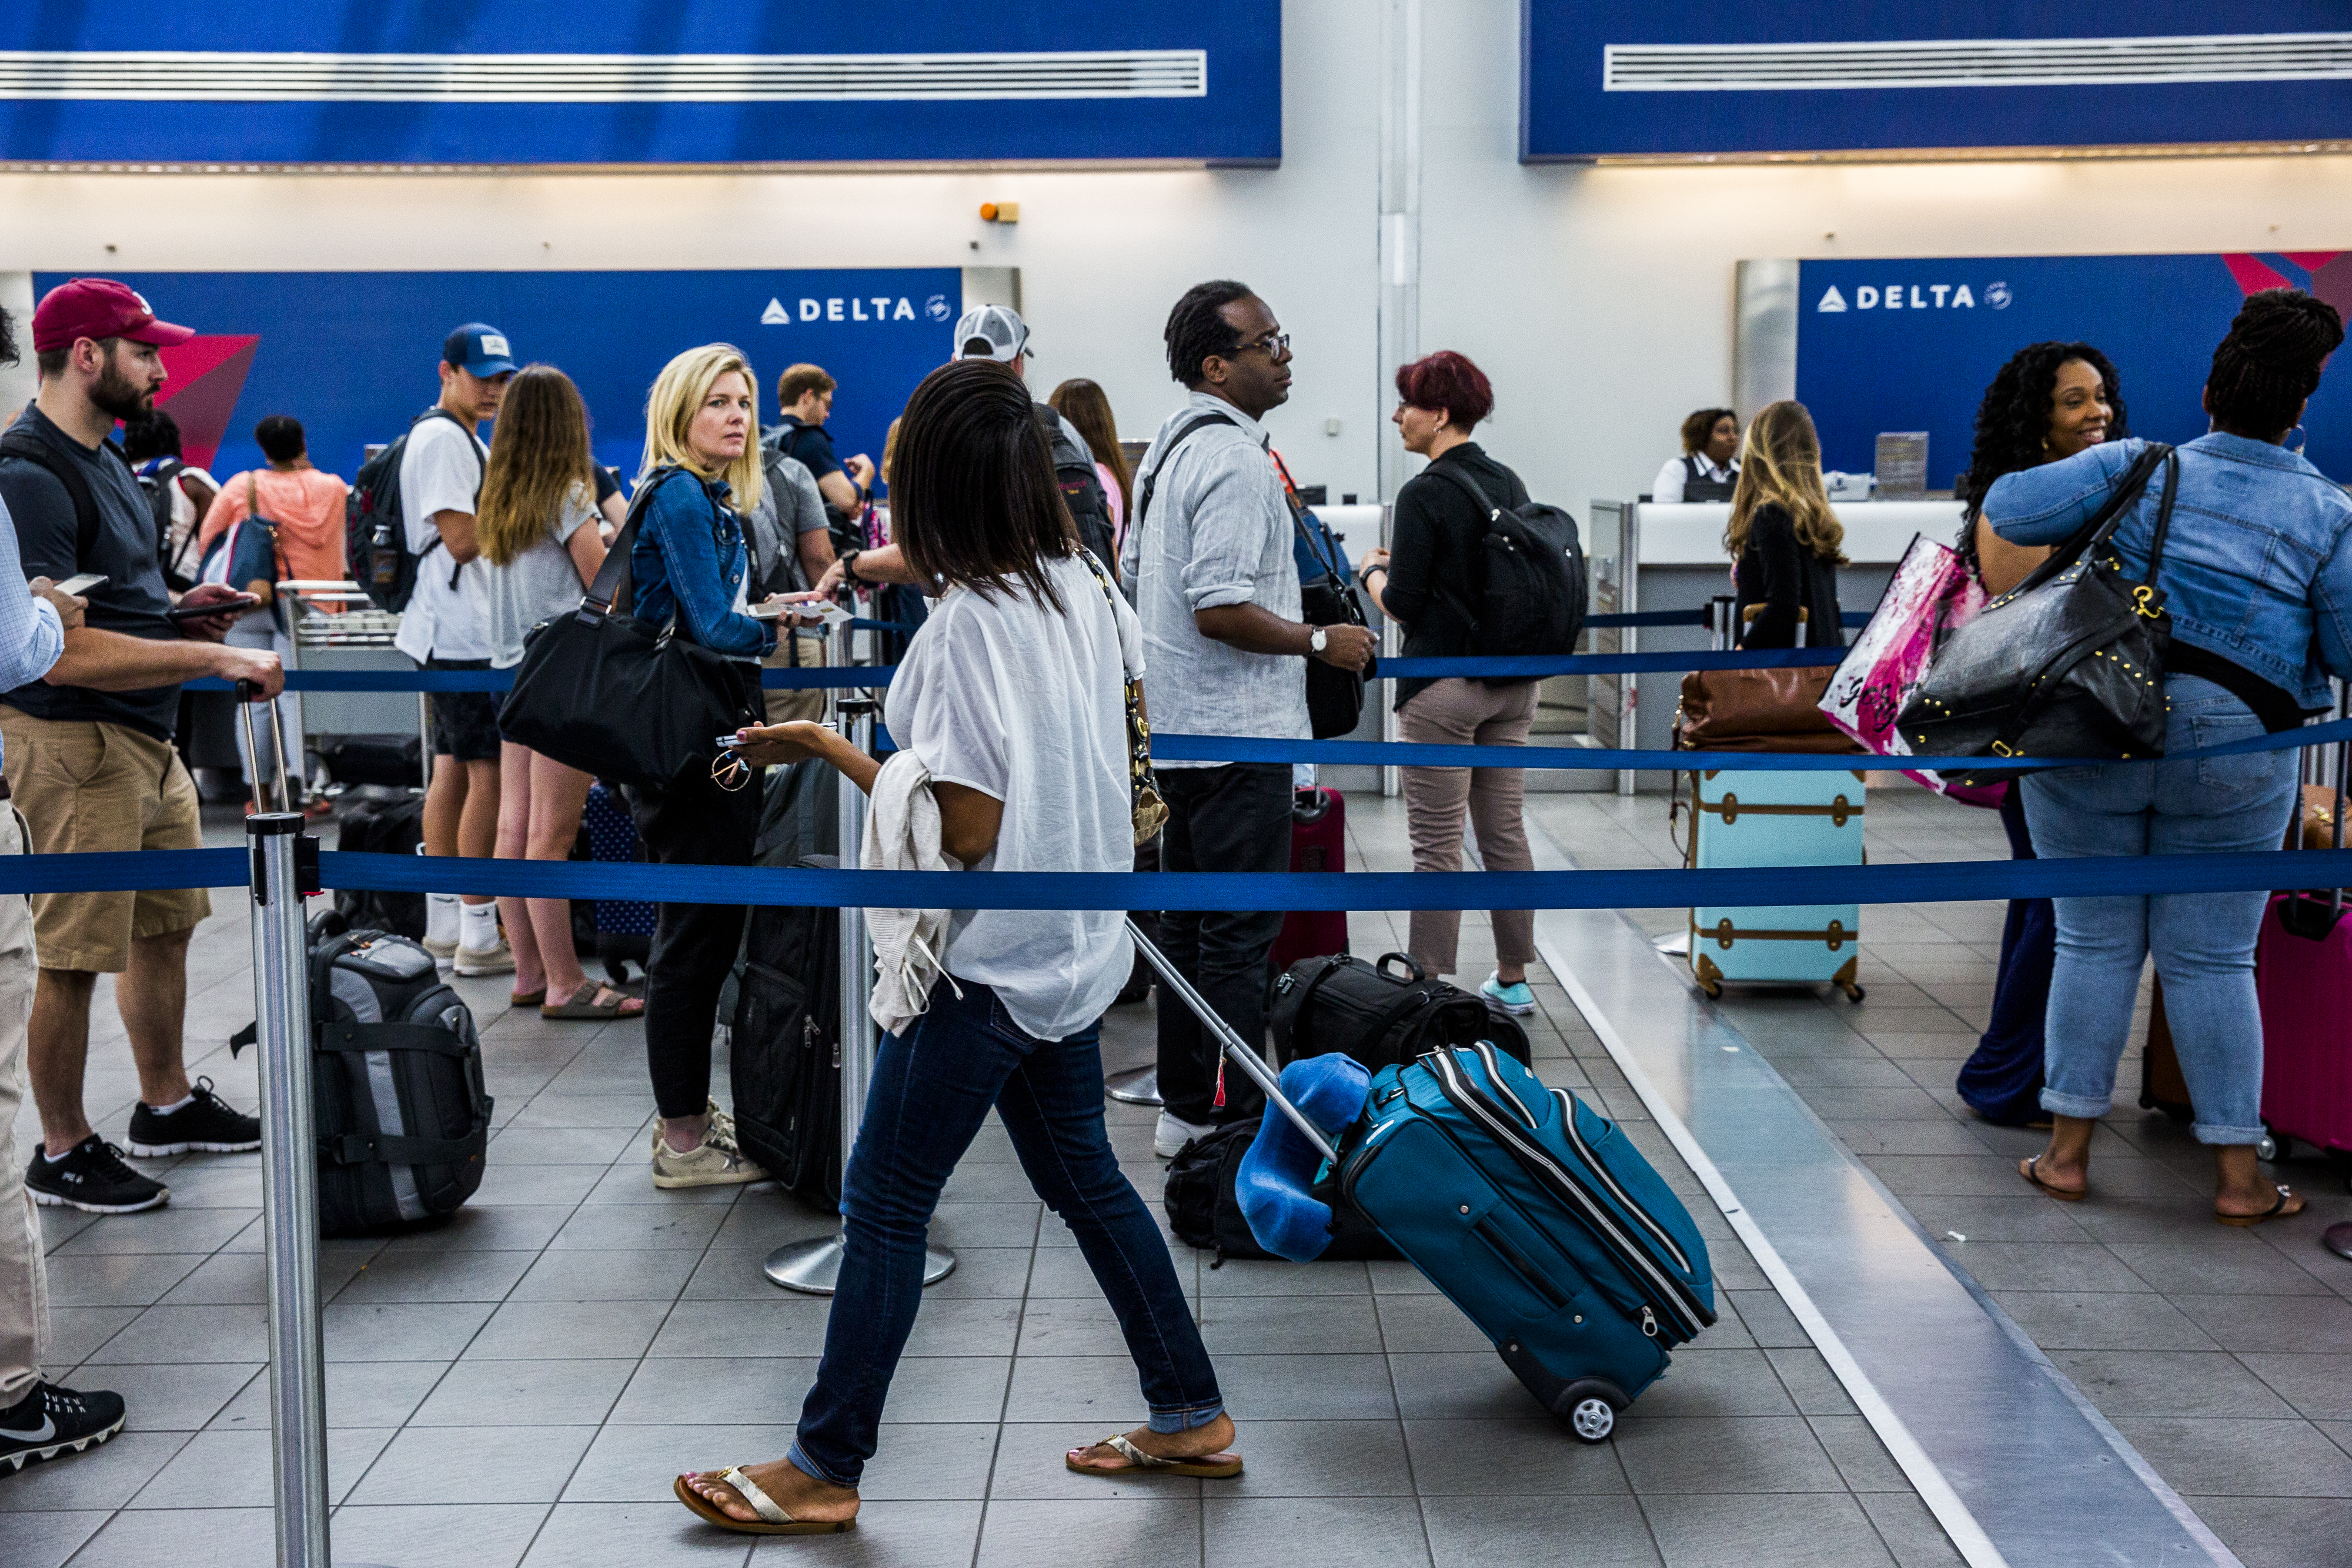 Travelers wait in line at the Delta Air Lines ticket counter inside LaGuardia Airport (LGA) in New York, U.S., on Thursday, June 29, 2017.